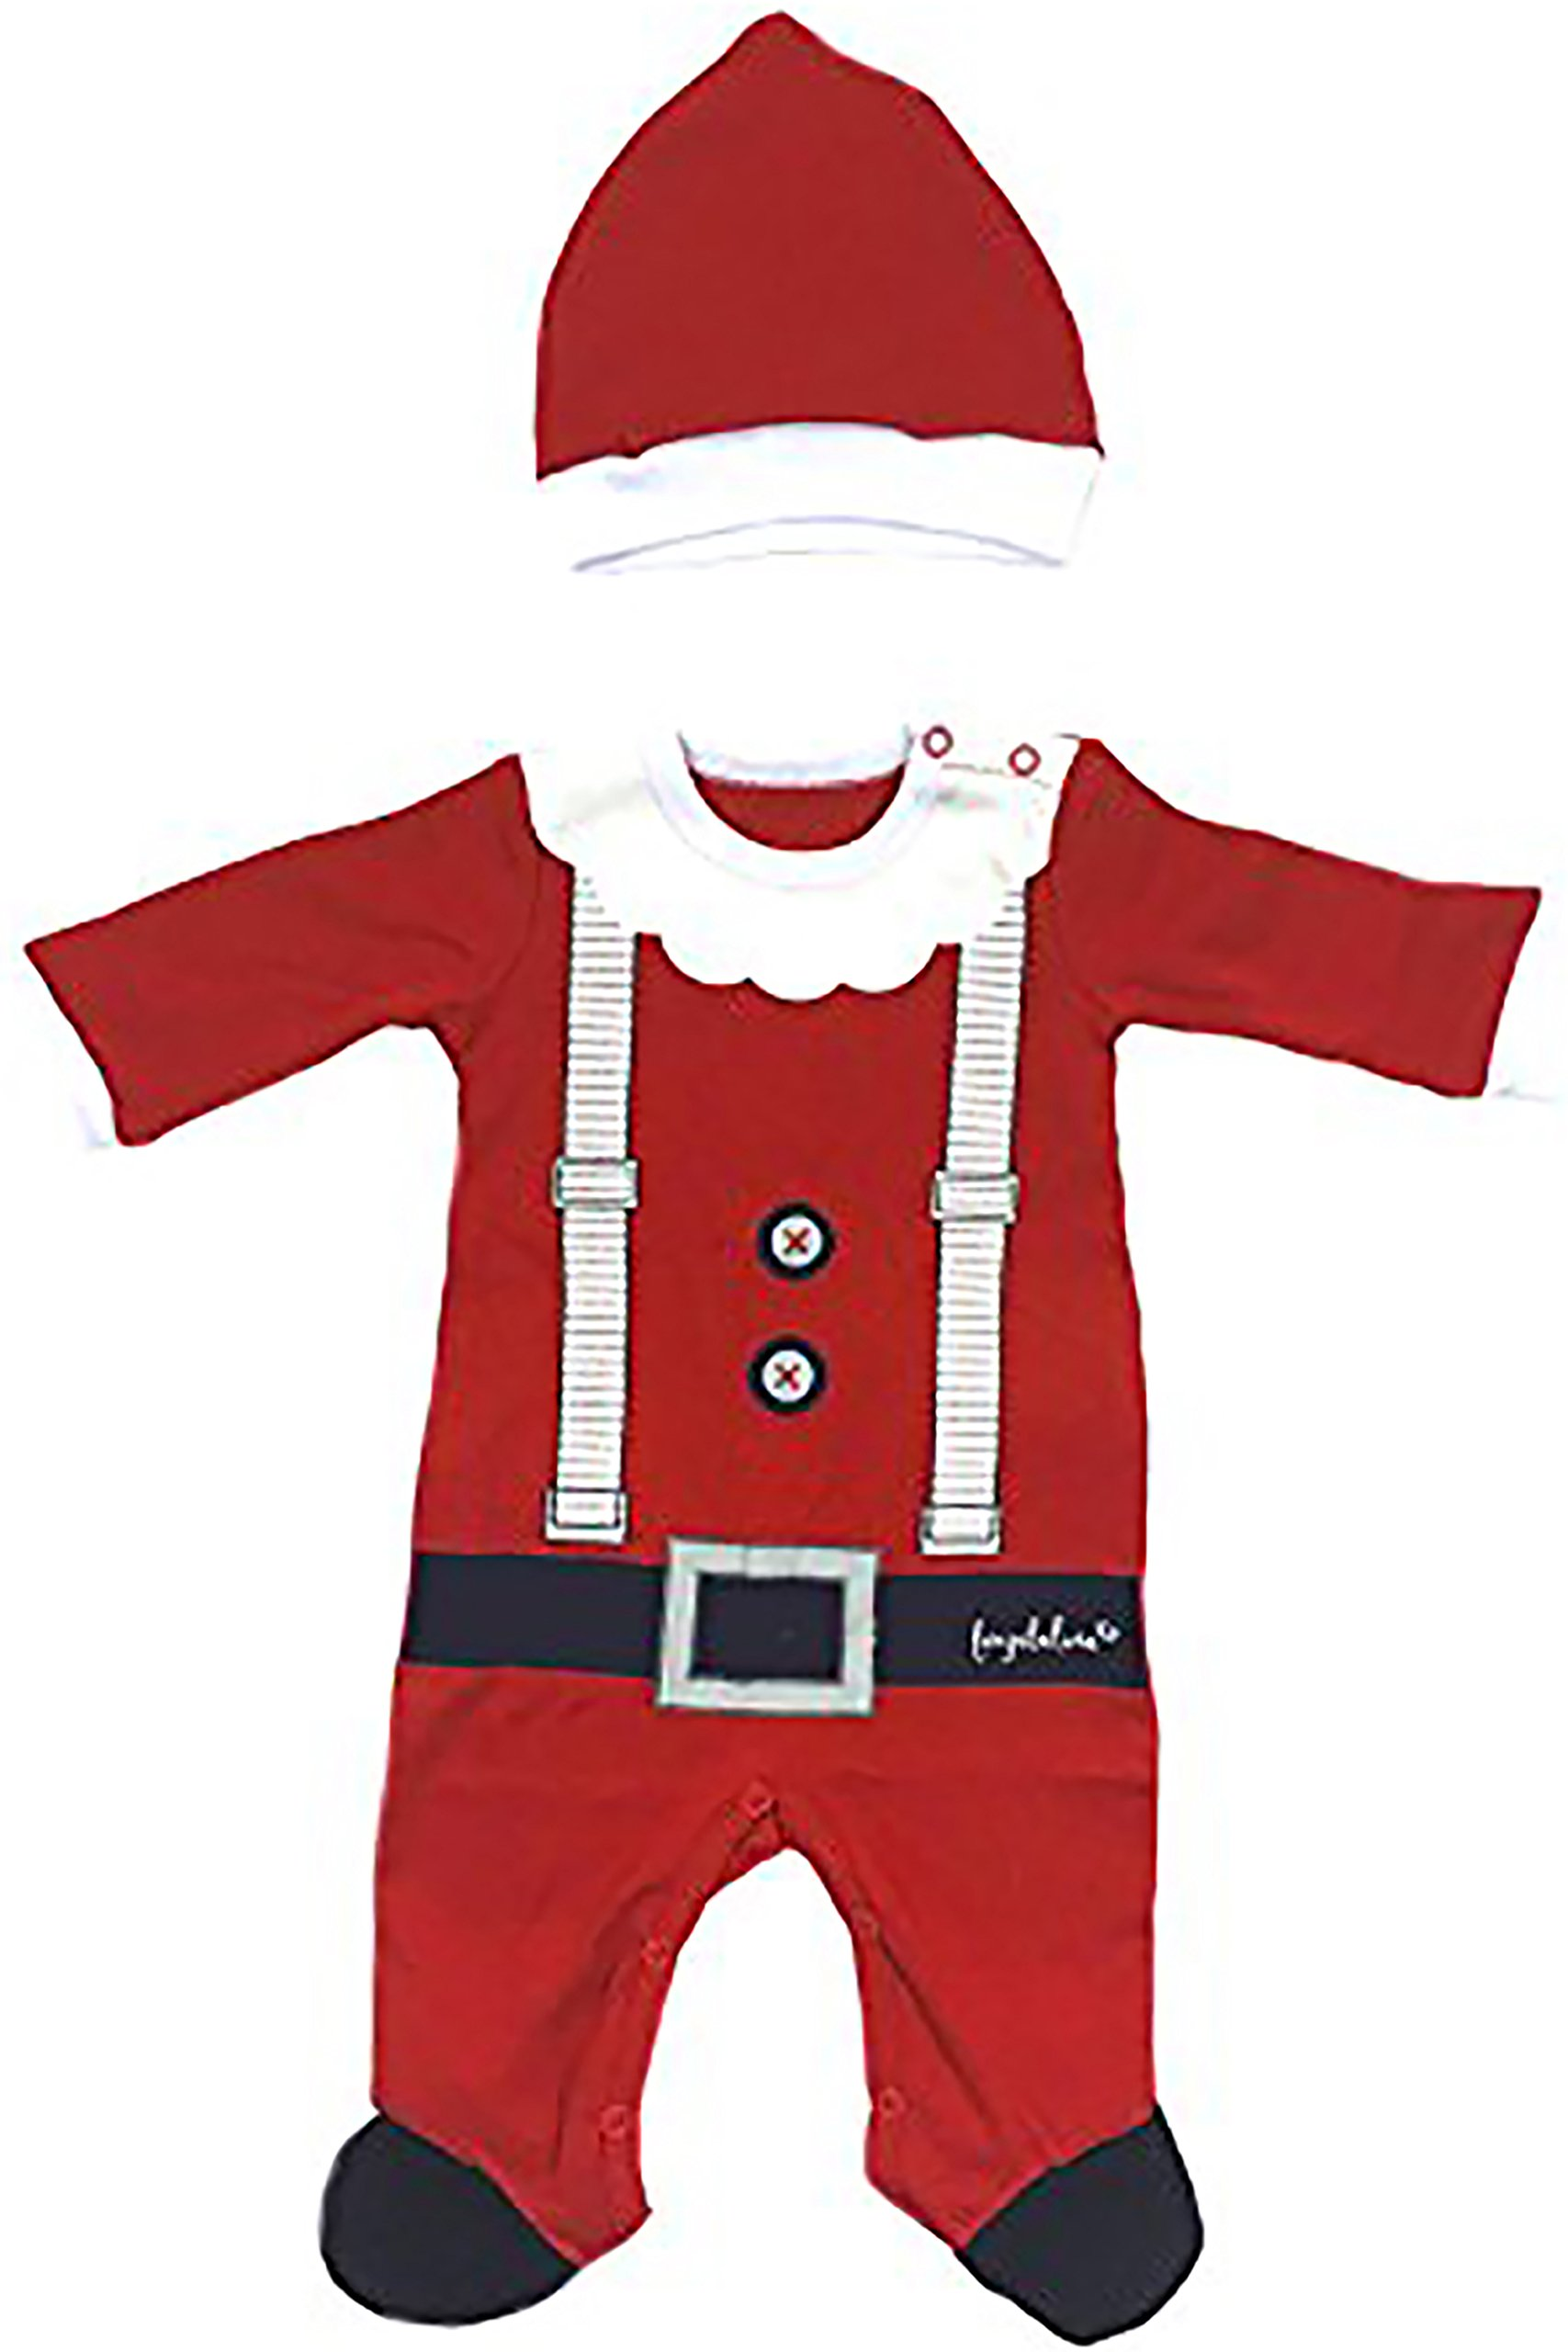 Fayfaire Christmas Pajamas Boutique Quality: Adorable Xmas Santa Suit with Hat 6-12M by Fayfaire (Image #1)